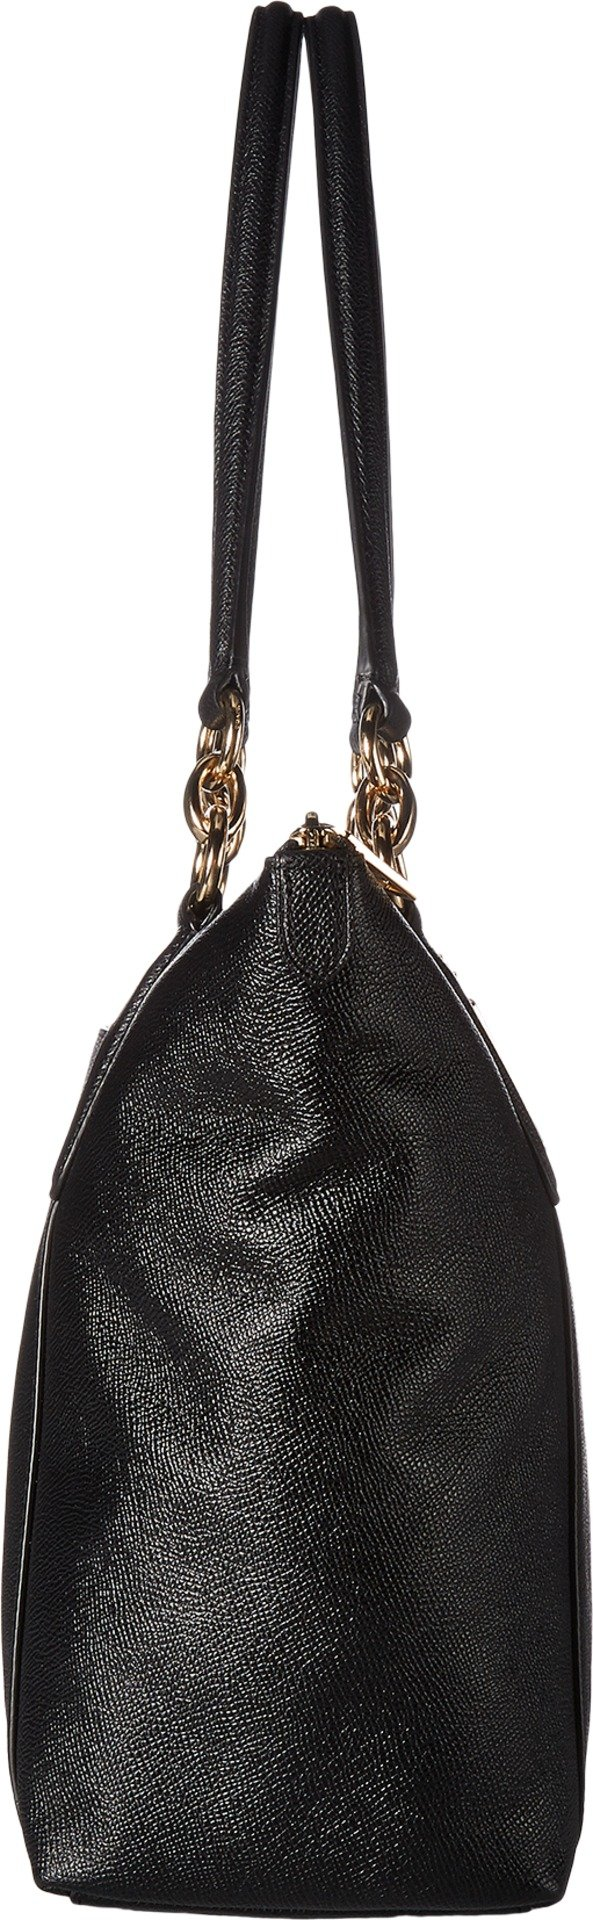 COACH Women's Crossgrain Ava Tote Im/Black One Size by Coach (Image #3)